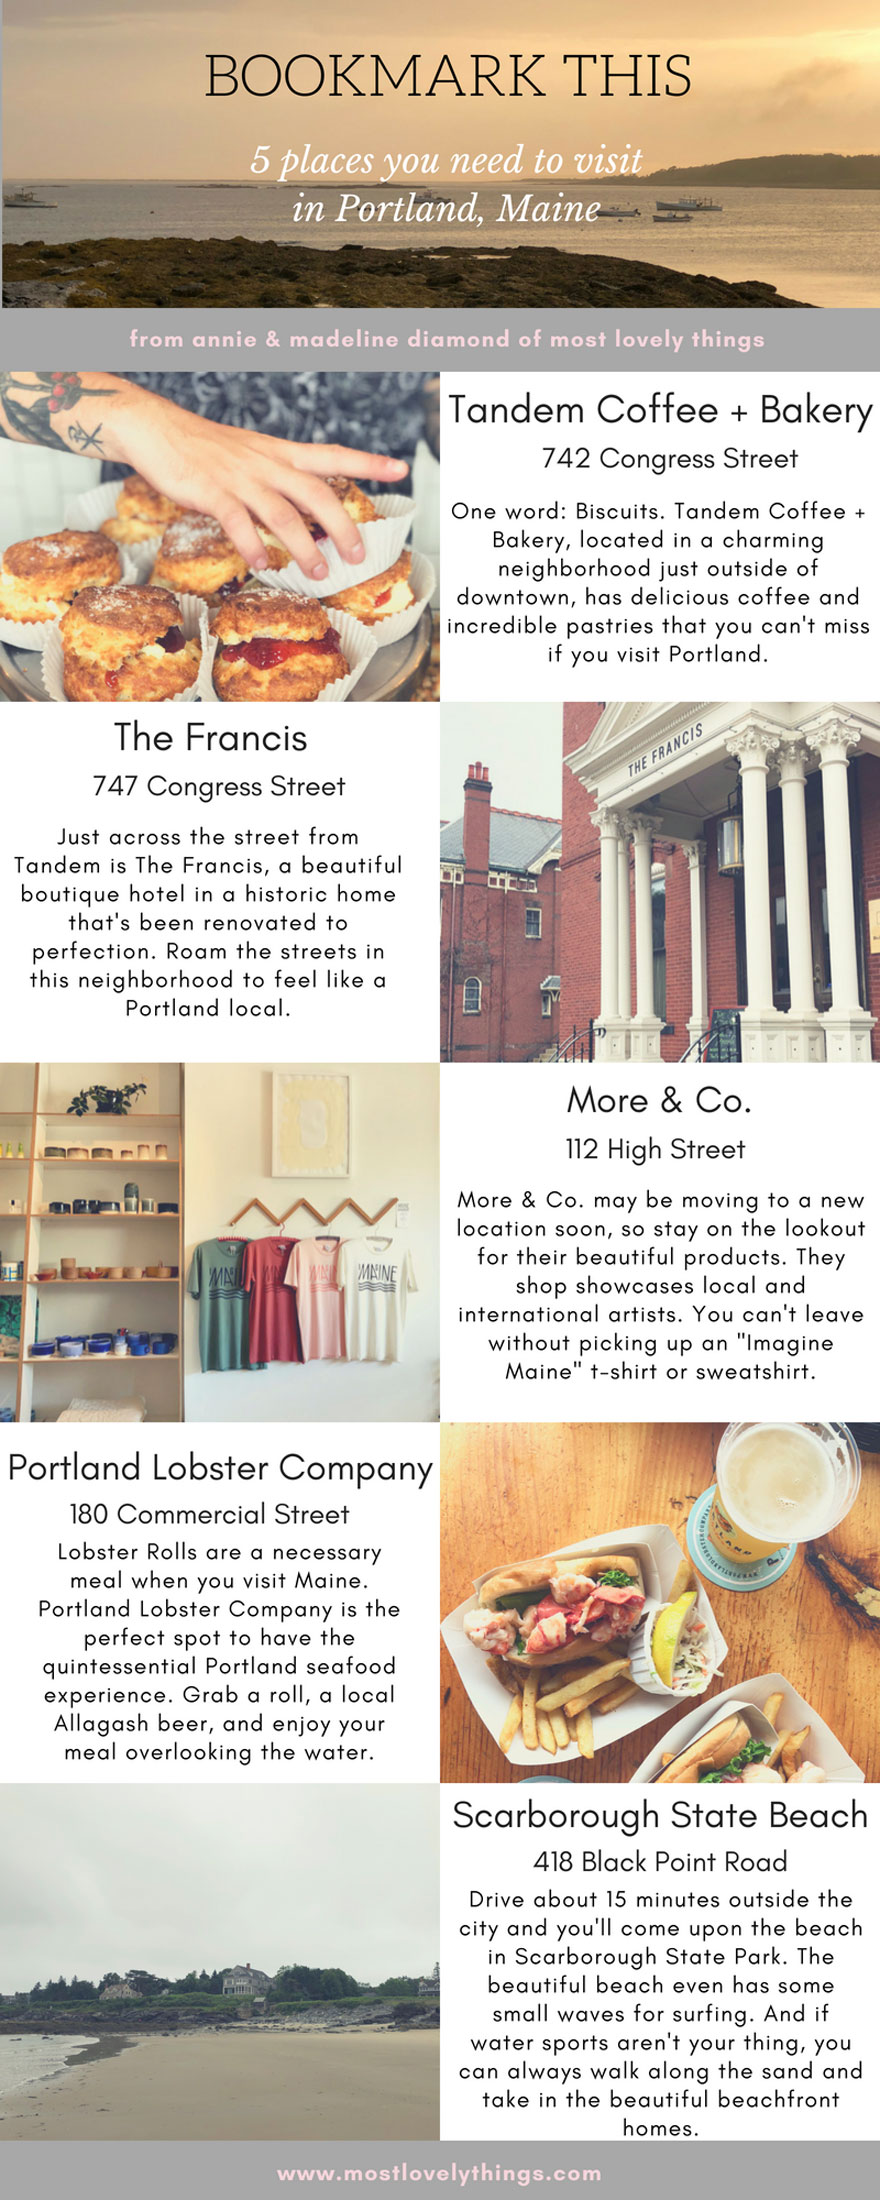 Bookmark This for your next visit to Portland, Maine! #portlandmaine #portland #maine #travel